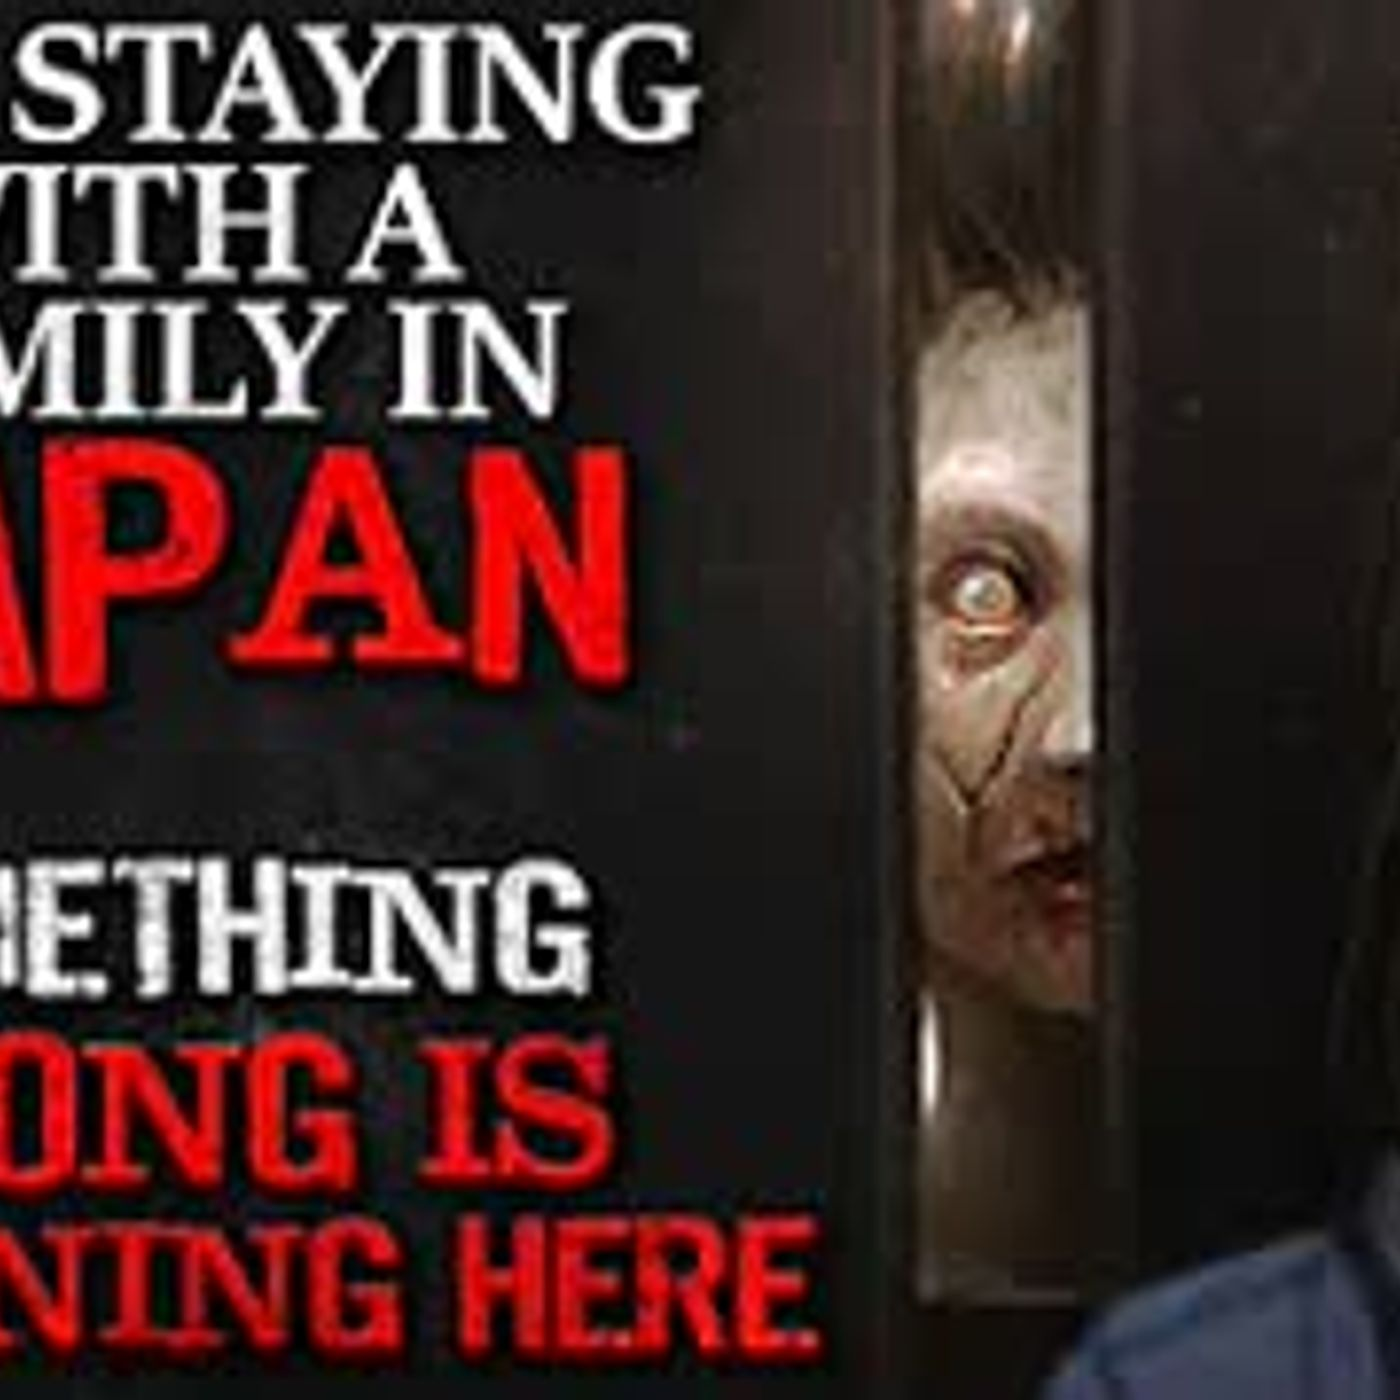 """I am staying with a family in Japan. Something very wrong is happening here"" Creepypasta"